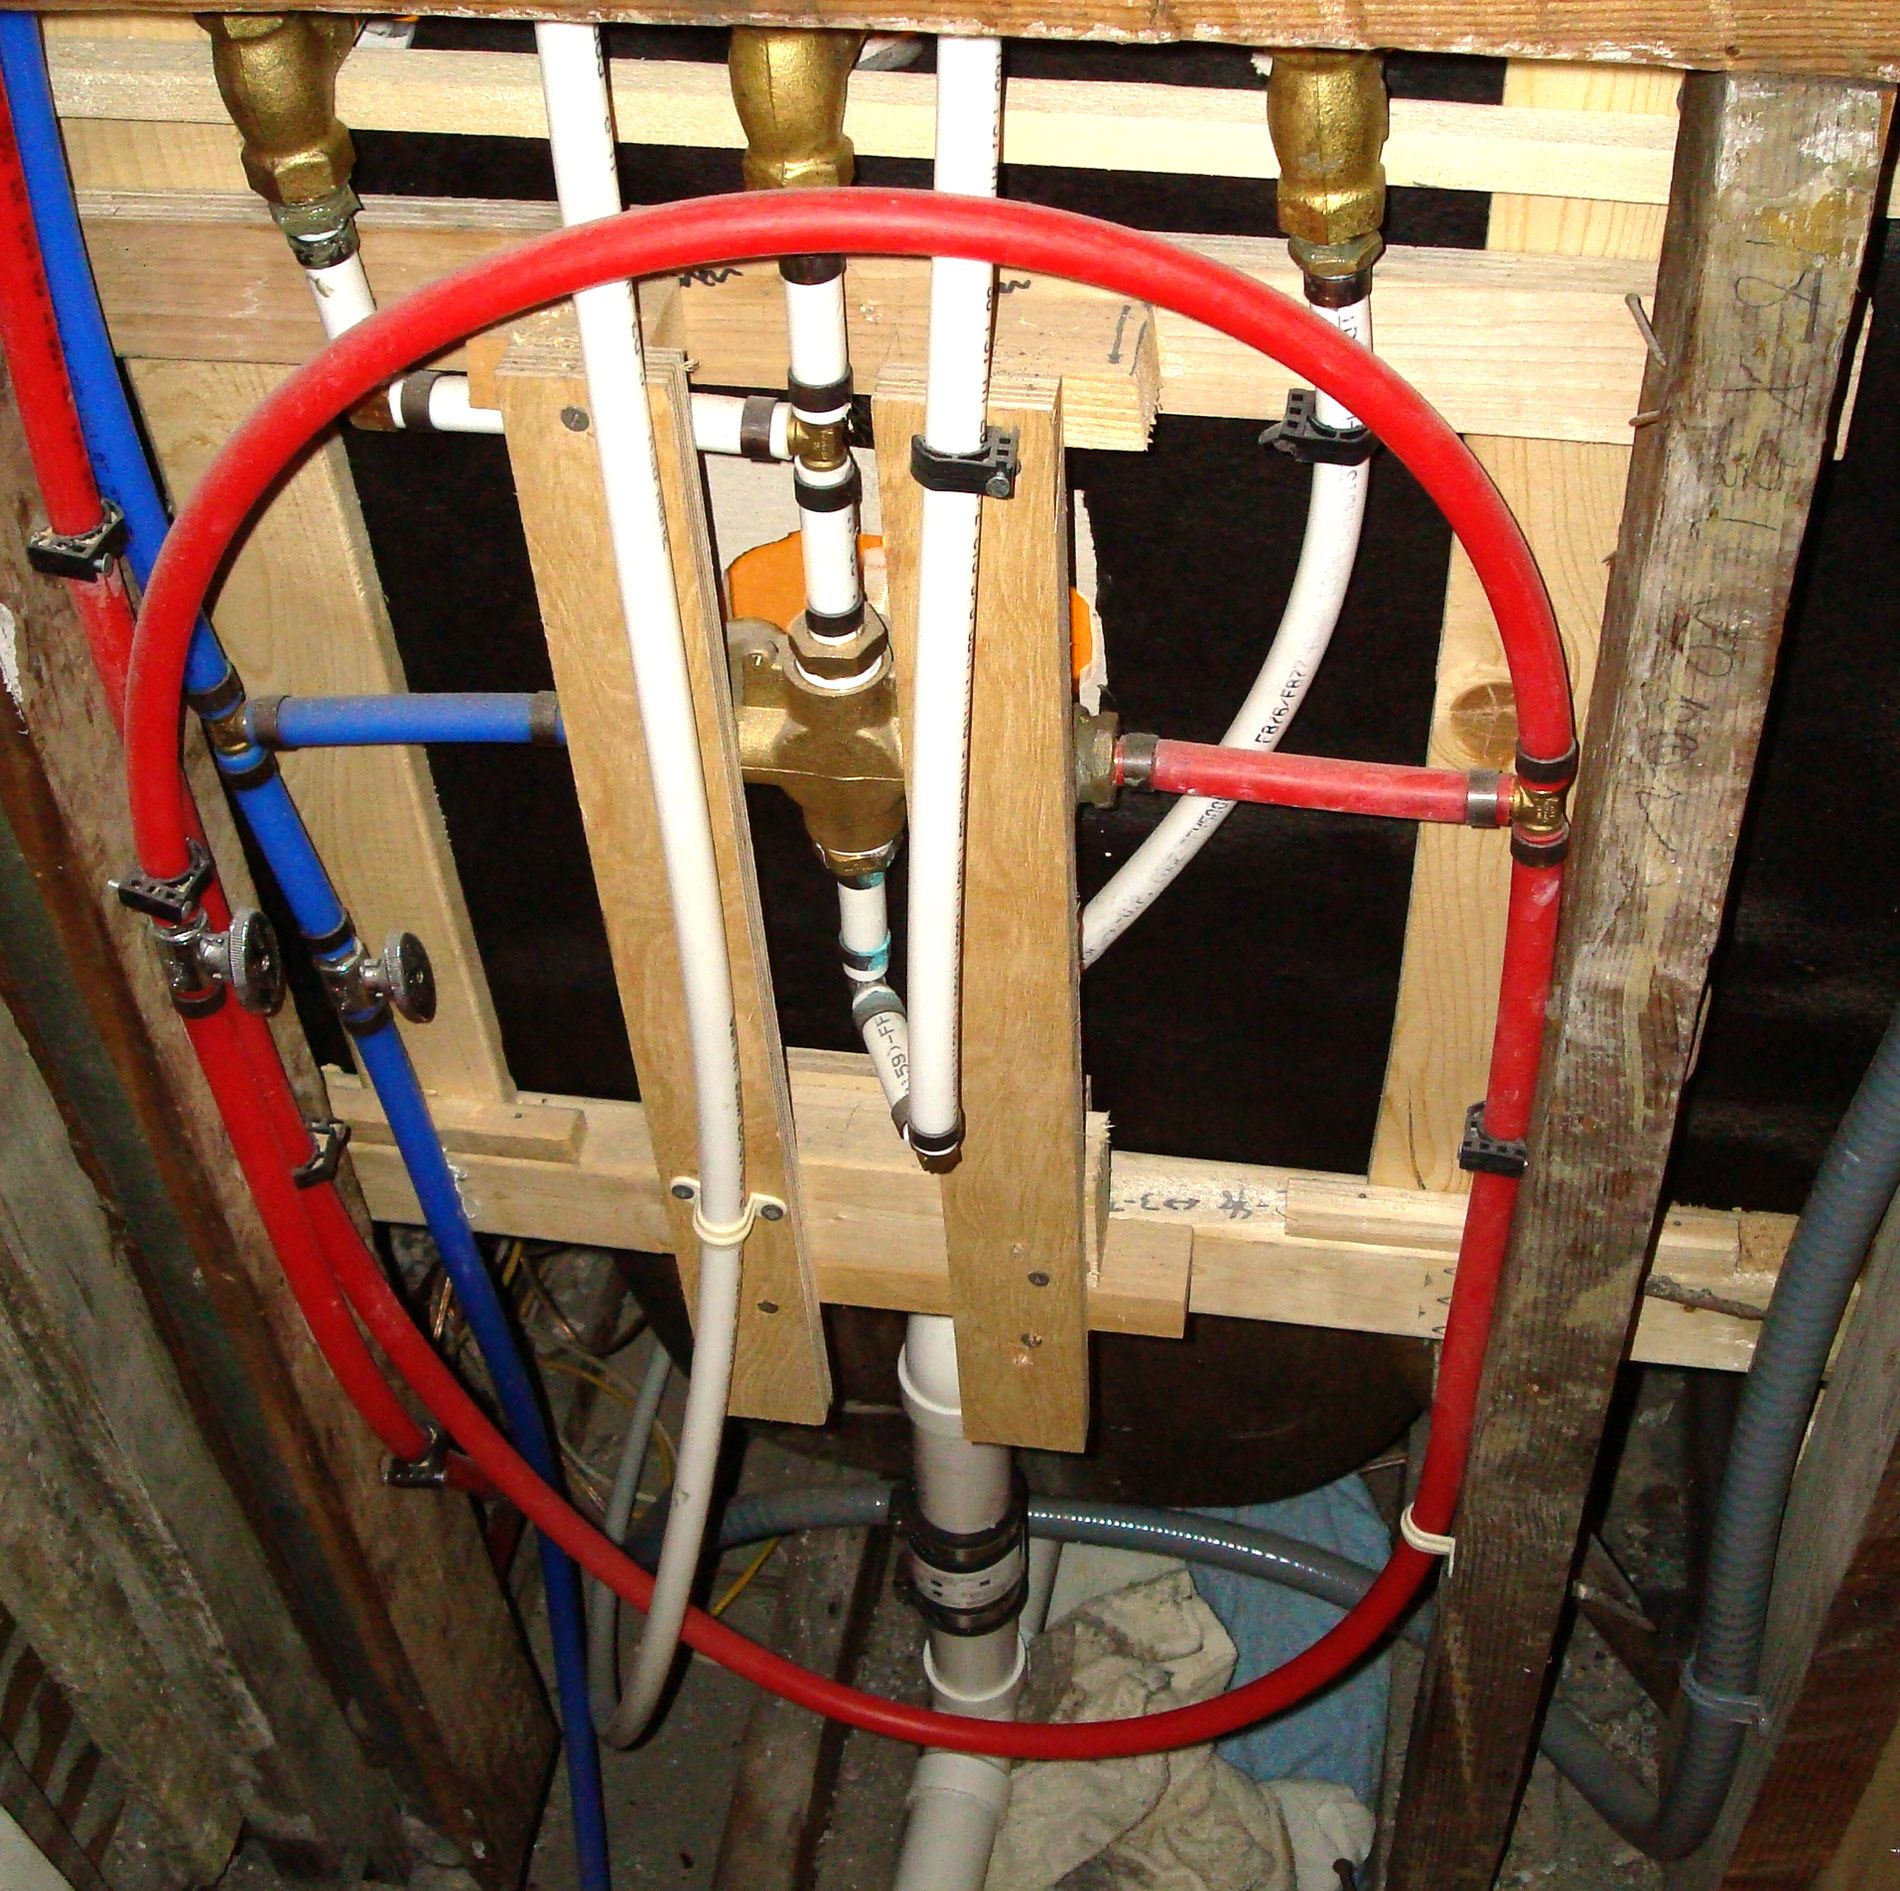 Plumbing with pex pex plumbing pinterest pex for Using pex for drain lines